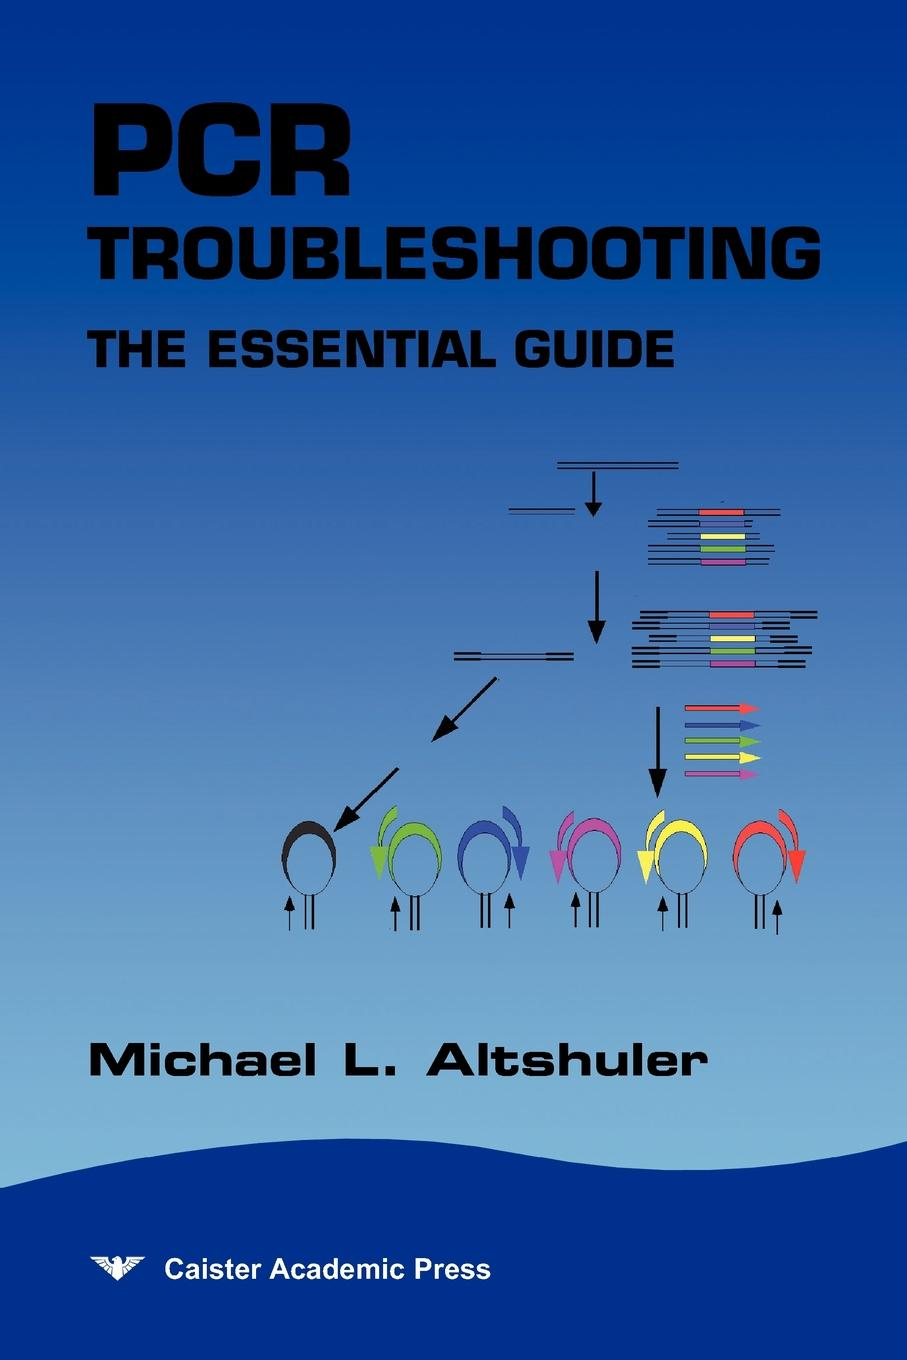 PCR Troubleshooting book